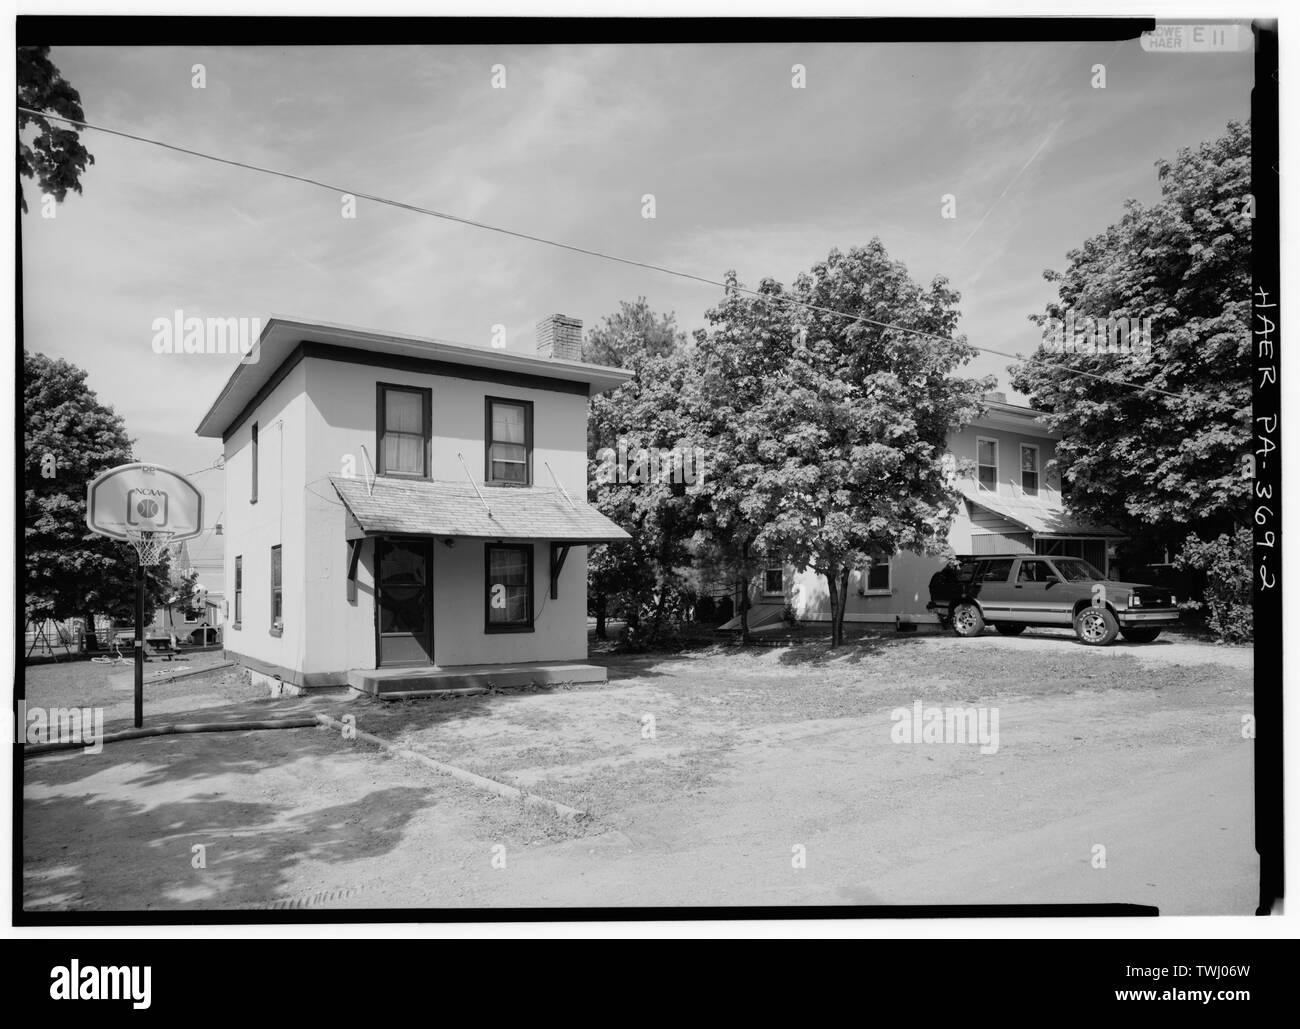 SINGLE-FAMILY HOUSES, FORMERLY OCCUPIED BY LOWER-LEVEL MANAGERS, ON 2ND STREET, LOOKING WEST; THESE ARE AMONG THE FEW CONCRETE-CONSTRUCTED DWELLINGS OF THEIR TYPE IN SOUTHWESTERN PENNSYLVANIA'S COAL TOWNS - Town of Cairnbrook, Cairnbrook, Somerset County, PA; Pitcairn, John; Loyal Hanna Coal and Coke Company; Madrid, transmitter - Stock Image